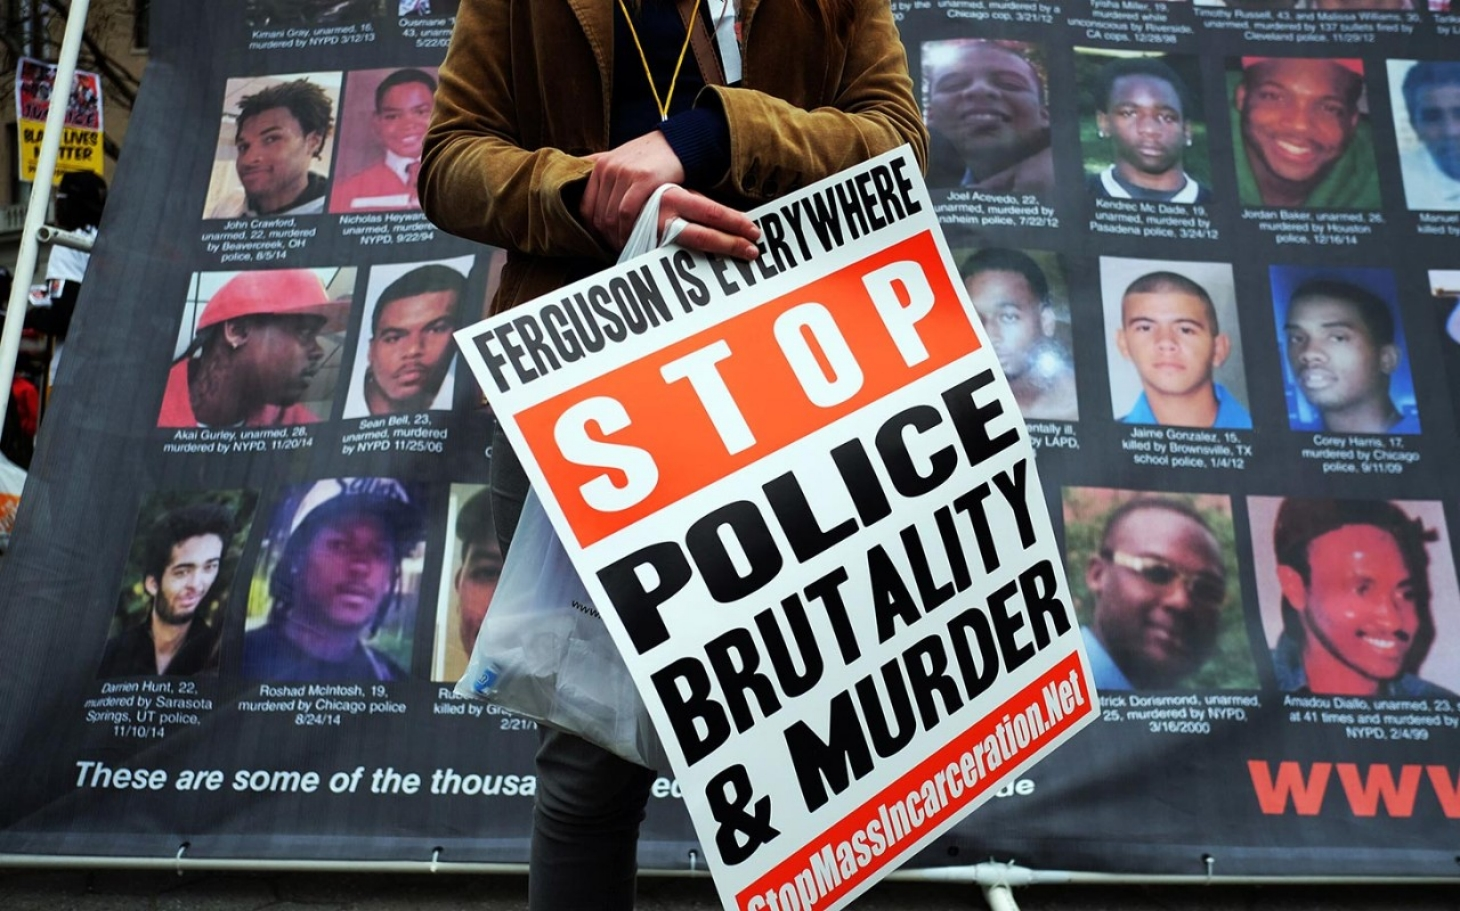 5 facts about police brutality in the United States that will shock you